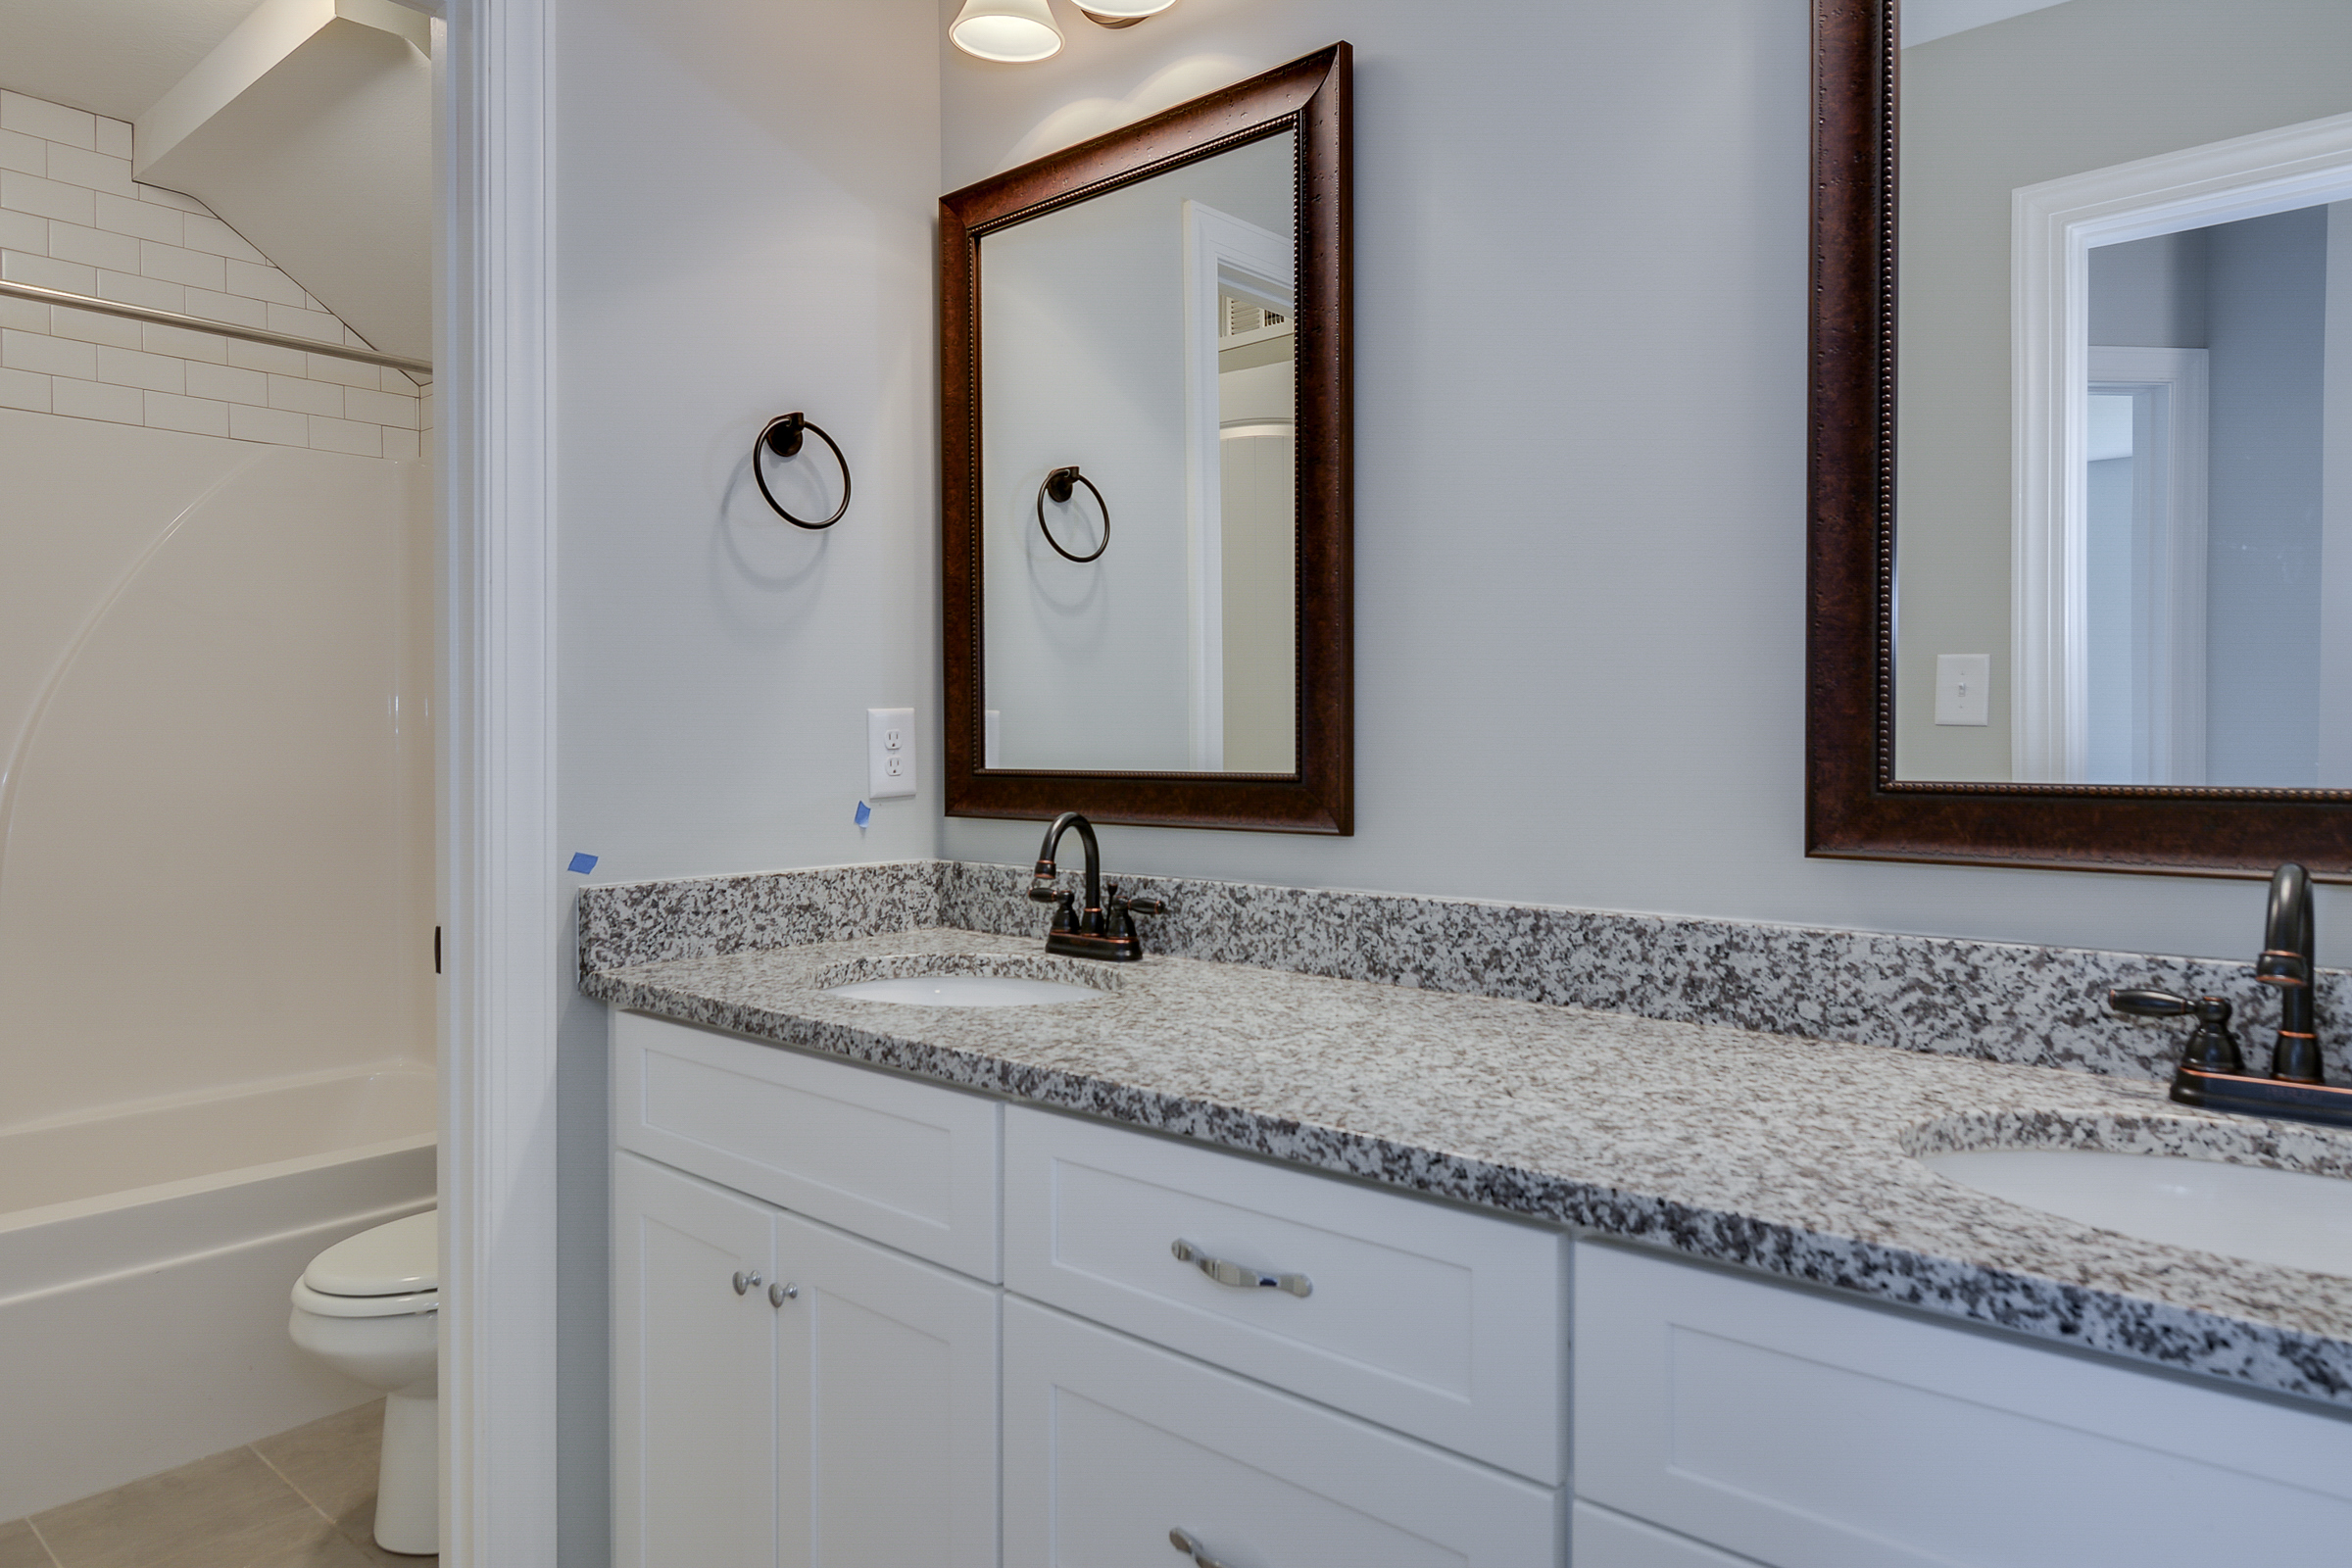 An image of a his and her bathroom sink with marble countertop in Kelarie.